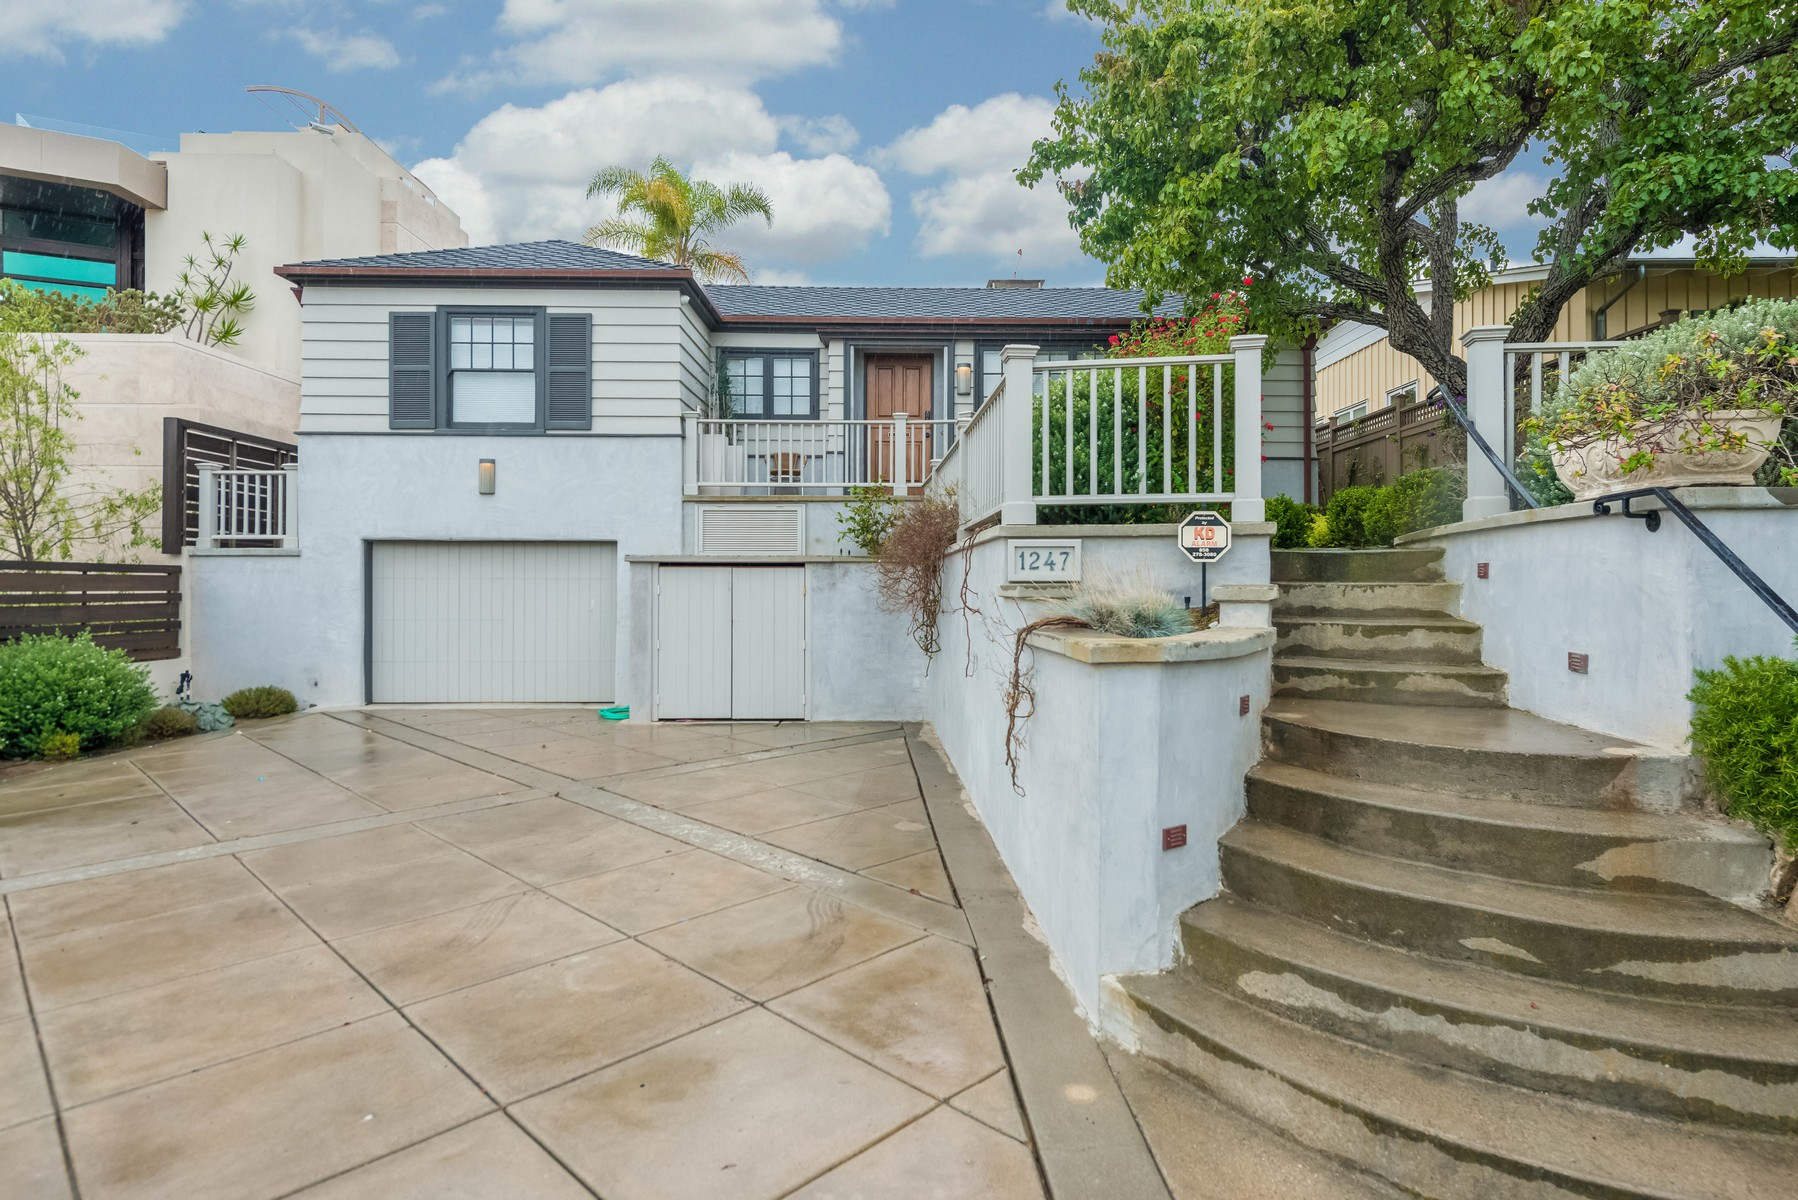 Additional photo for property listing at 1247 Silverado Street  La Jolla, California 92037 Estados Unidos